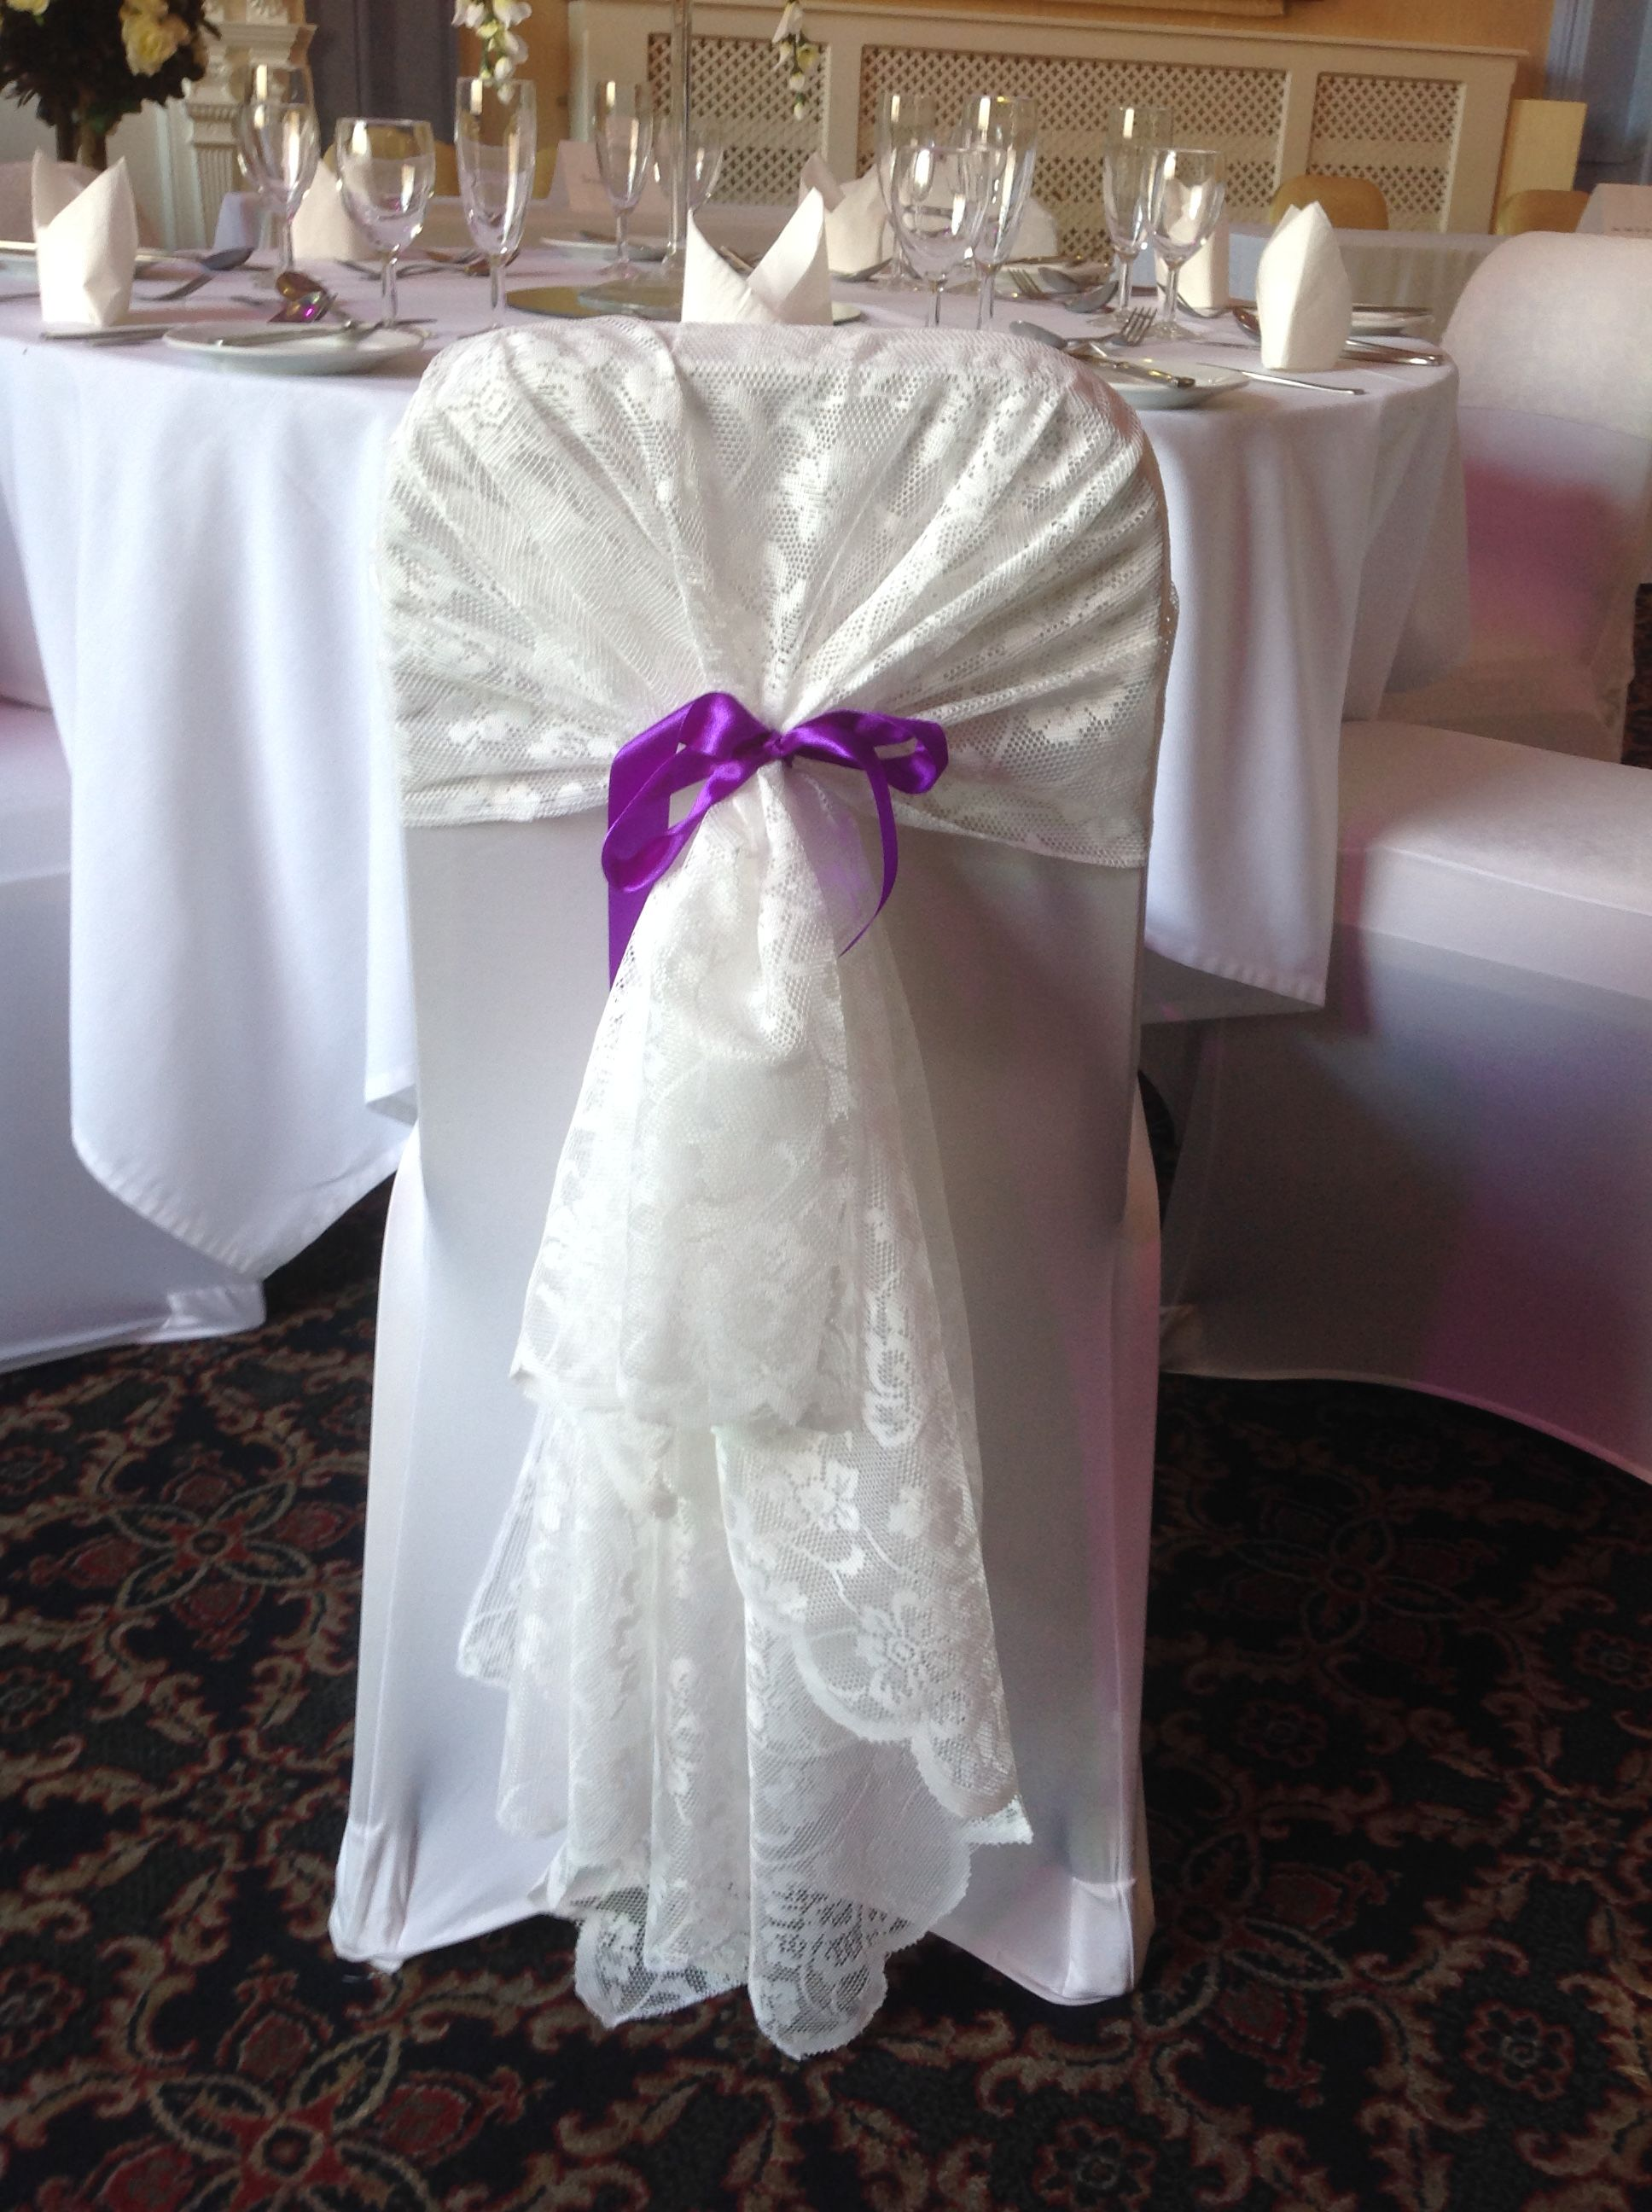 wedding chair covers tamworth design bar beautiful lace hood cover and available to hire from make it special events atherstone warkwickshire